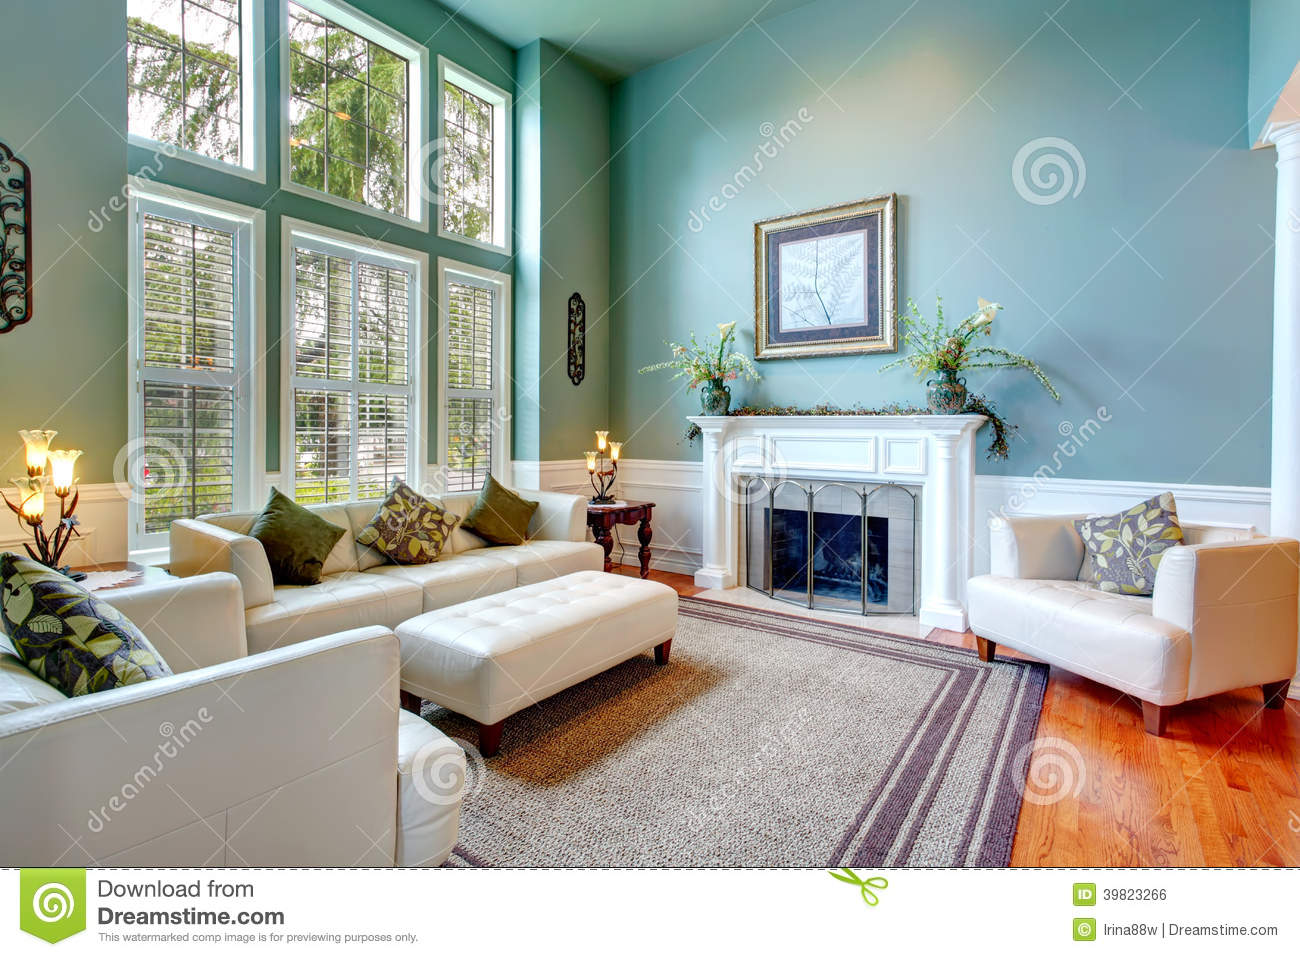 Luxury house interior elegant living room stock photo for White and aqua living room